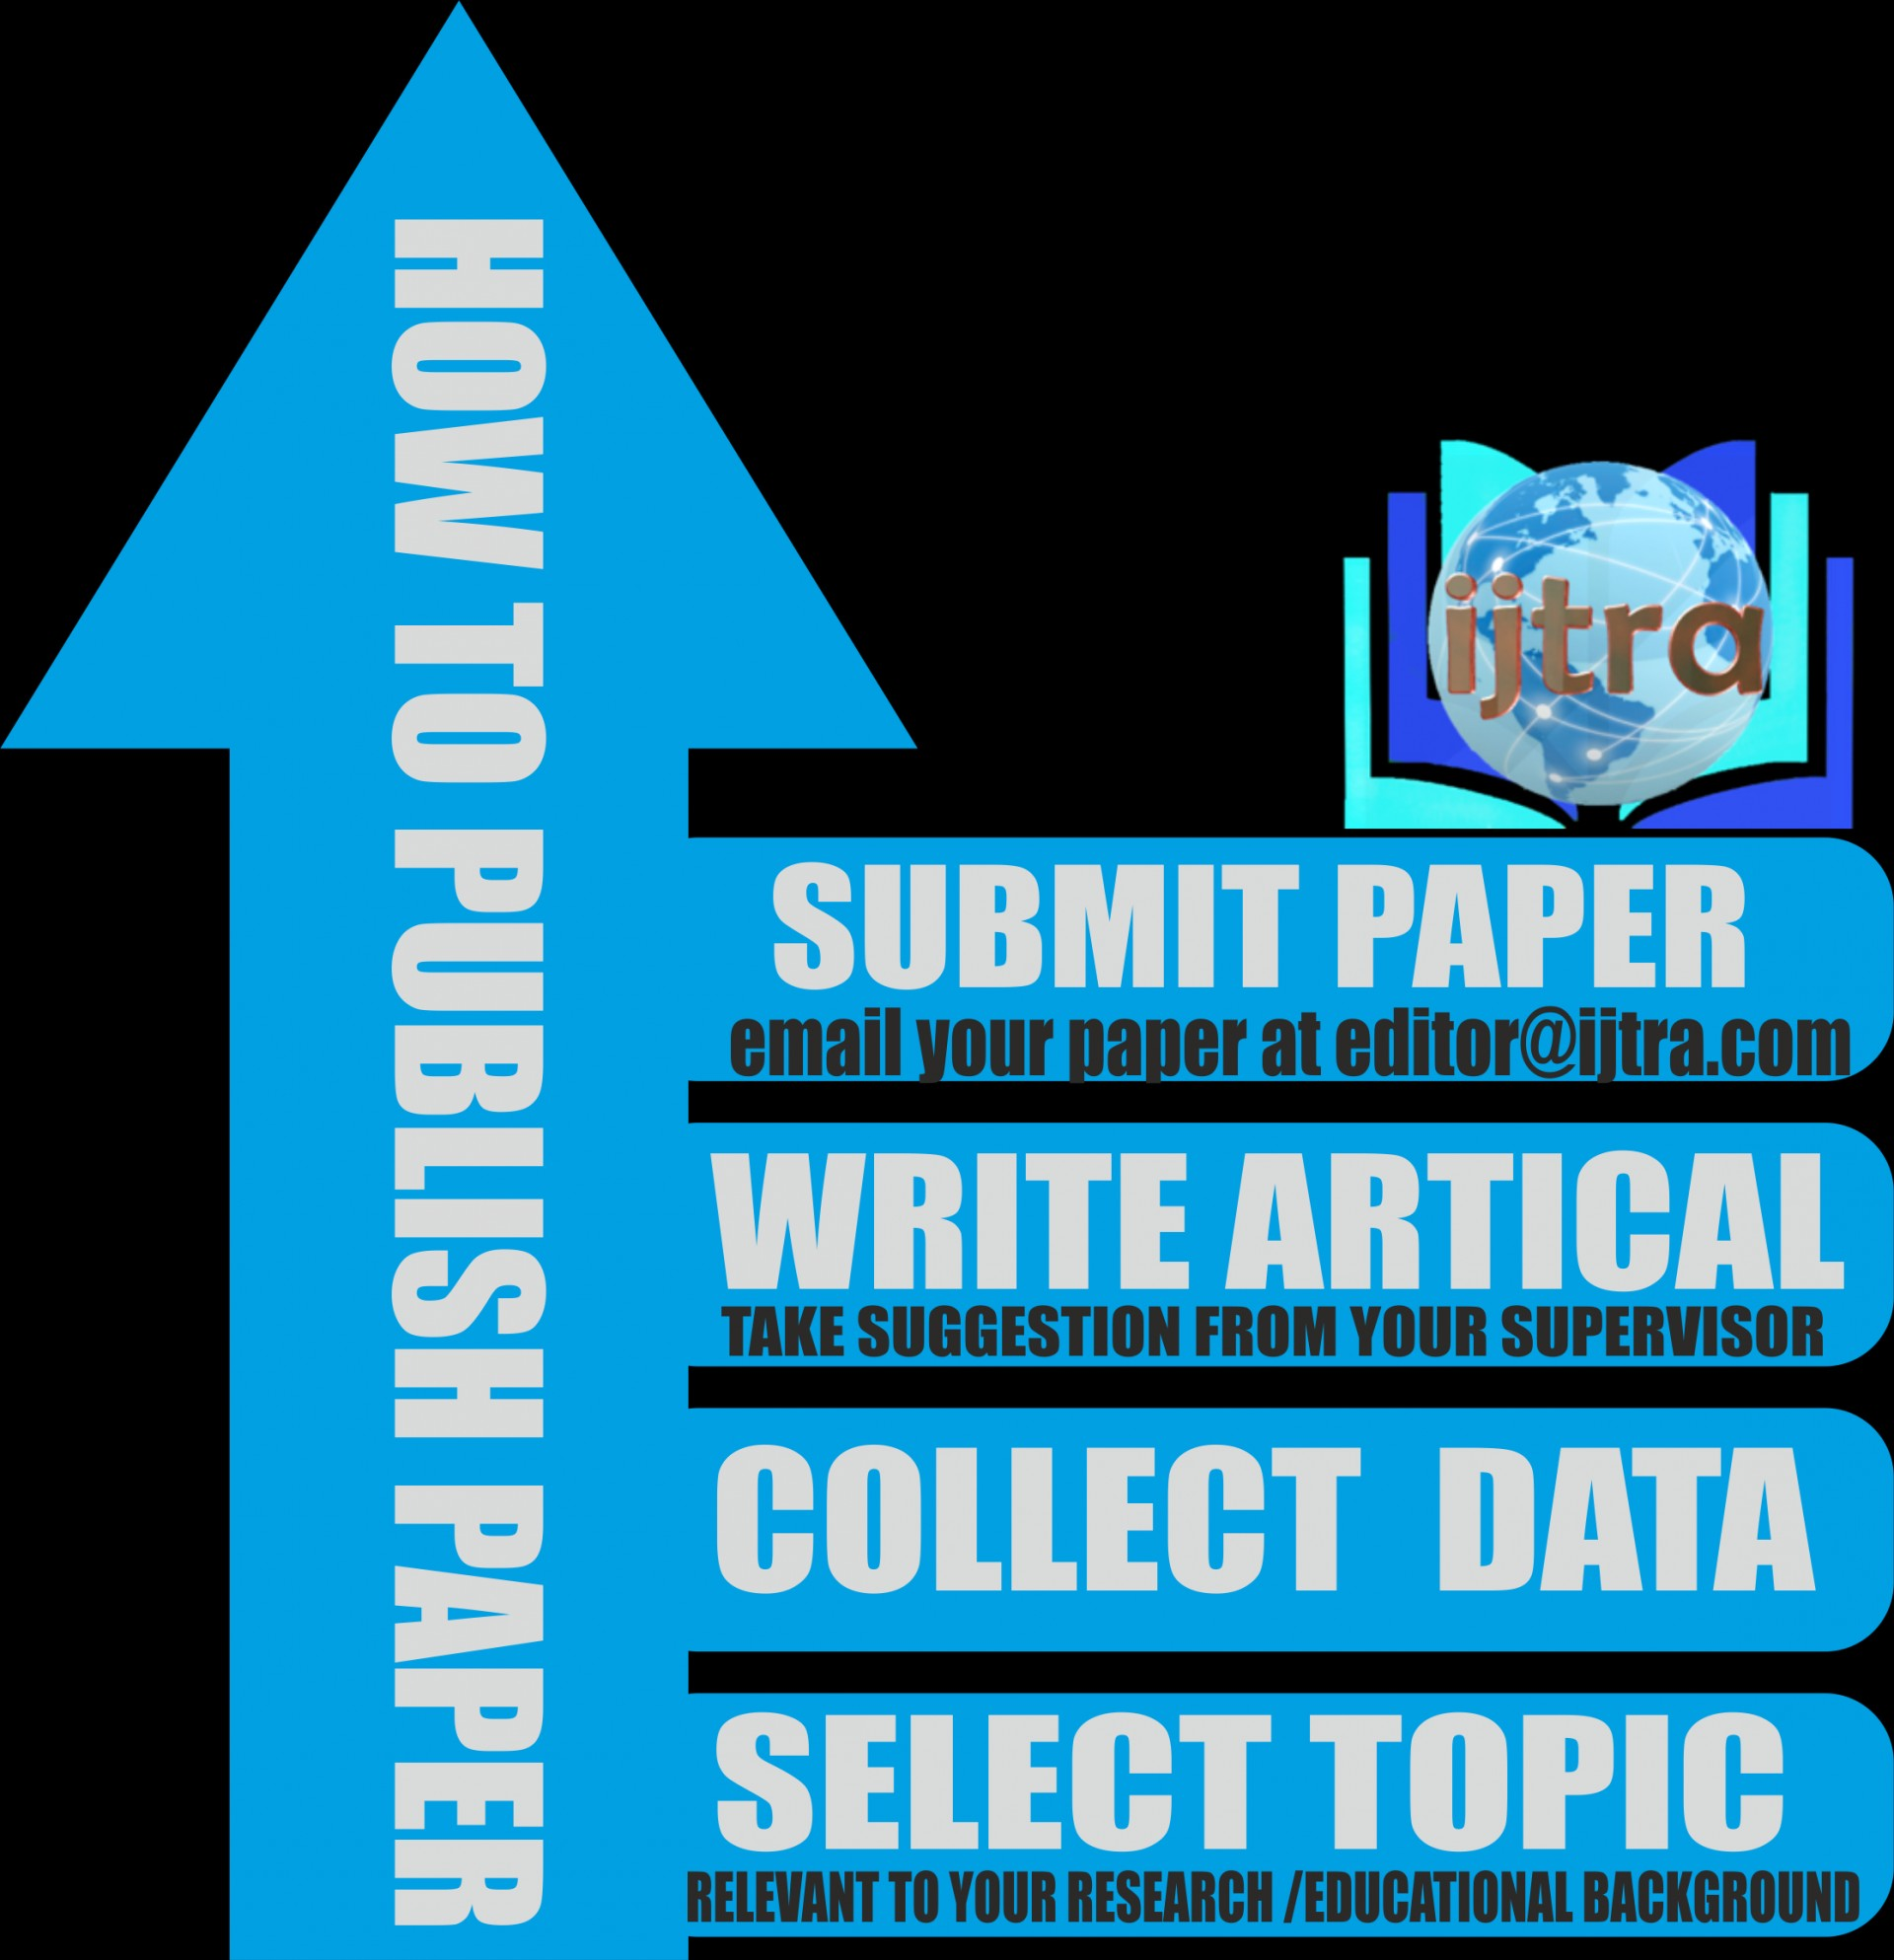 023 Ijtra Author Ins Research Paper Breathtaking Editor Free Professional Editors Software 1920